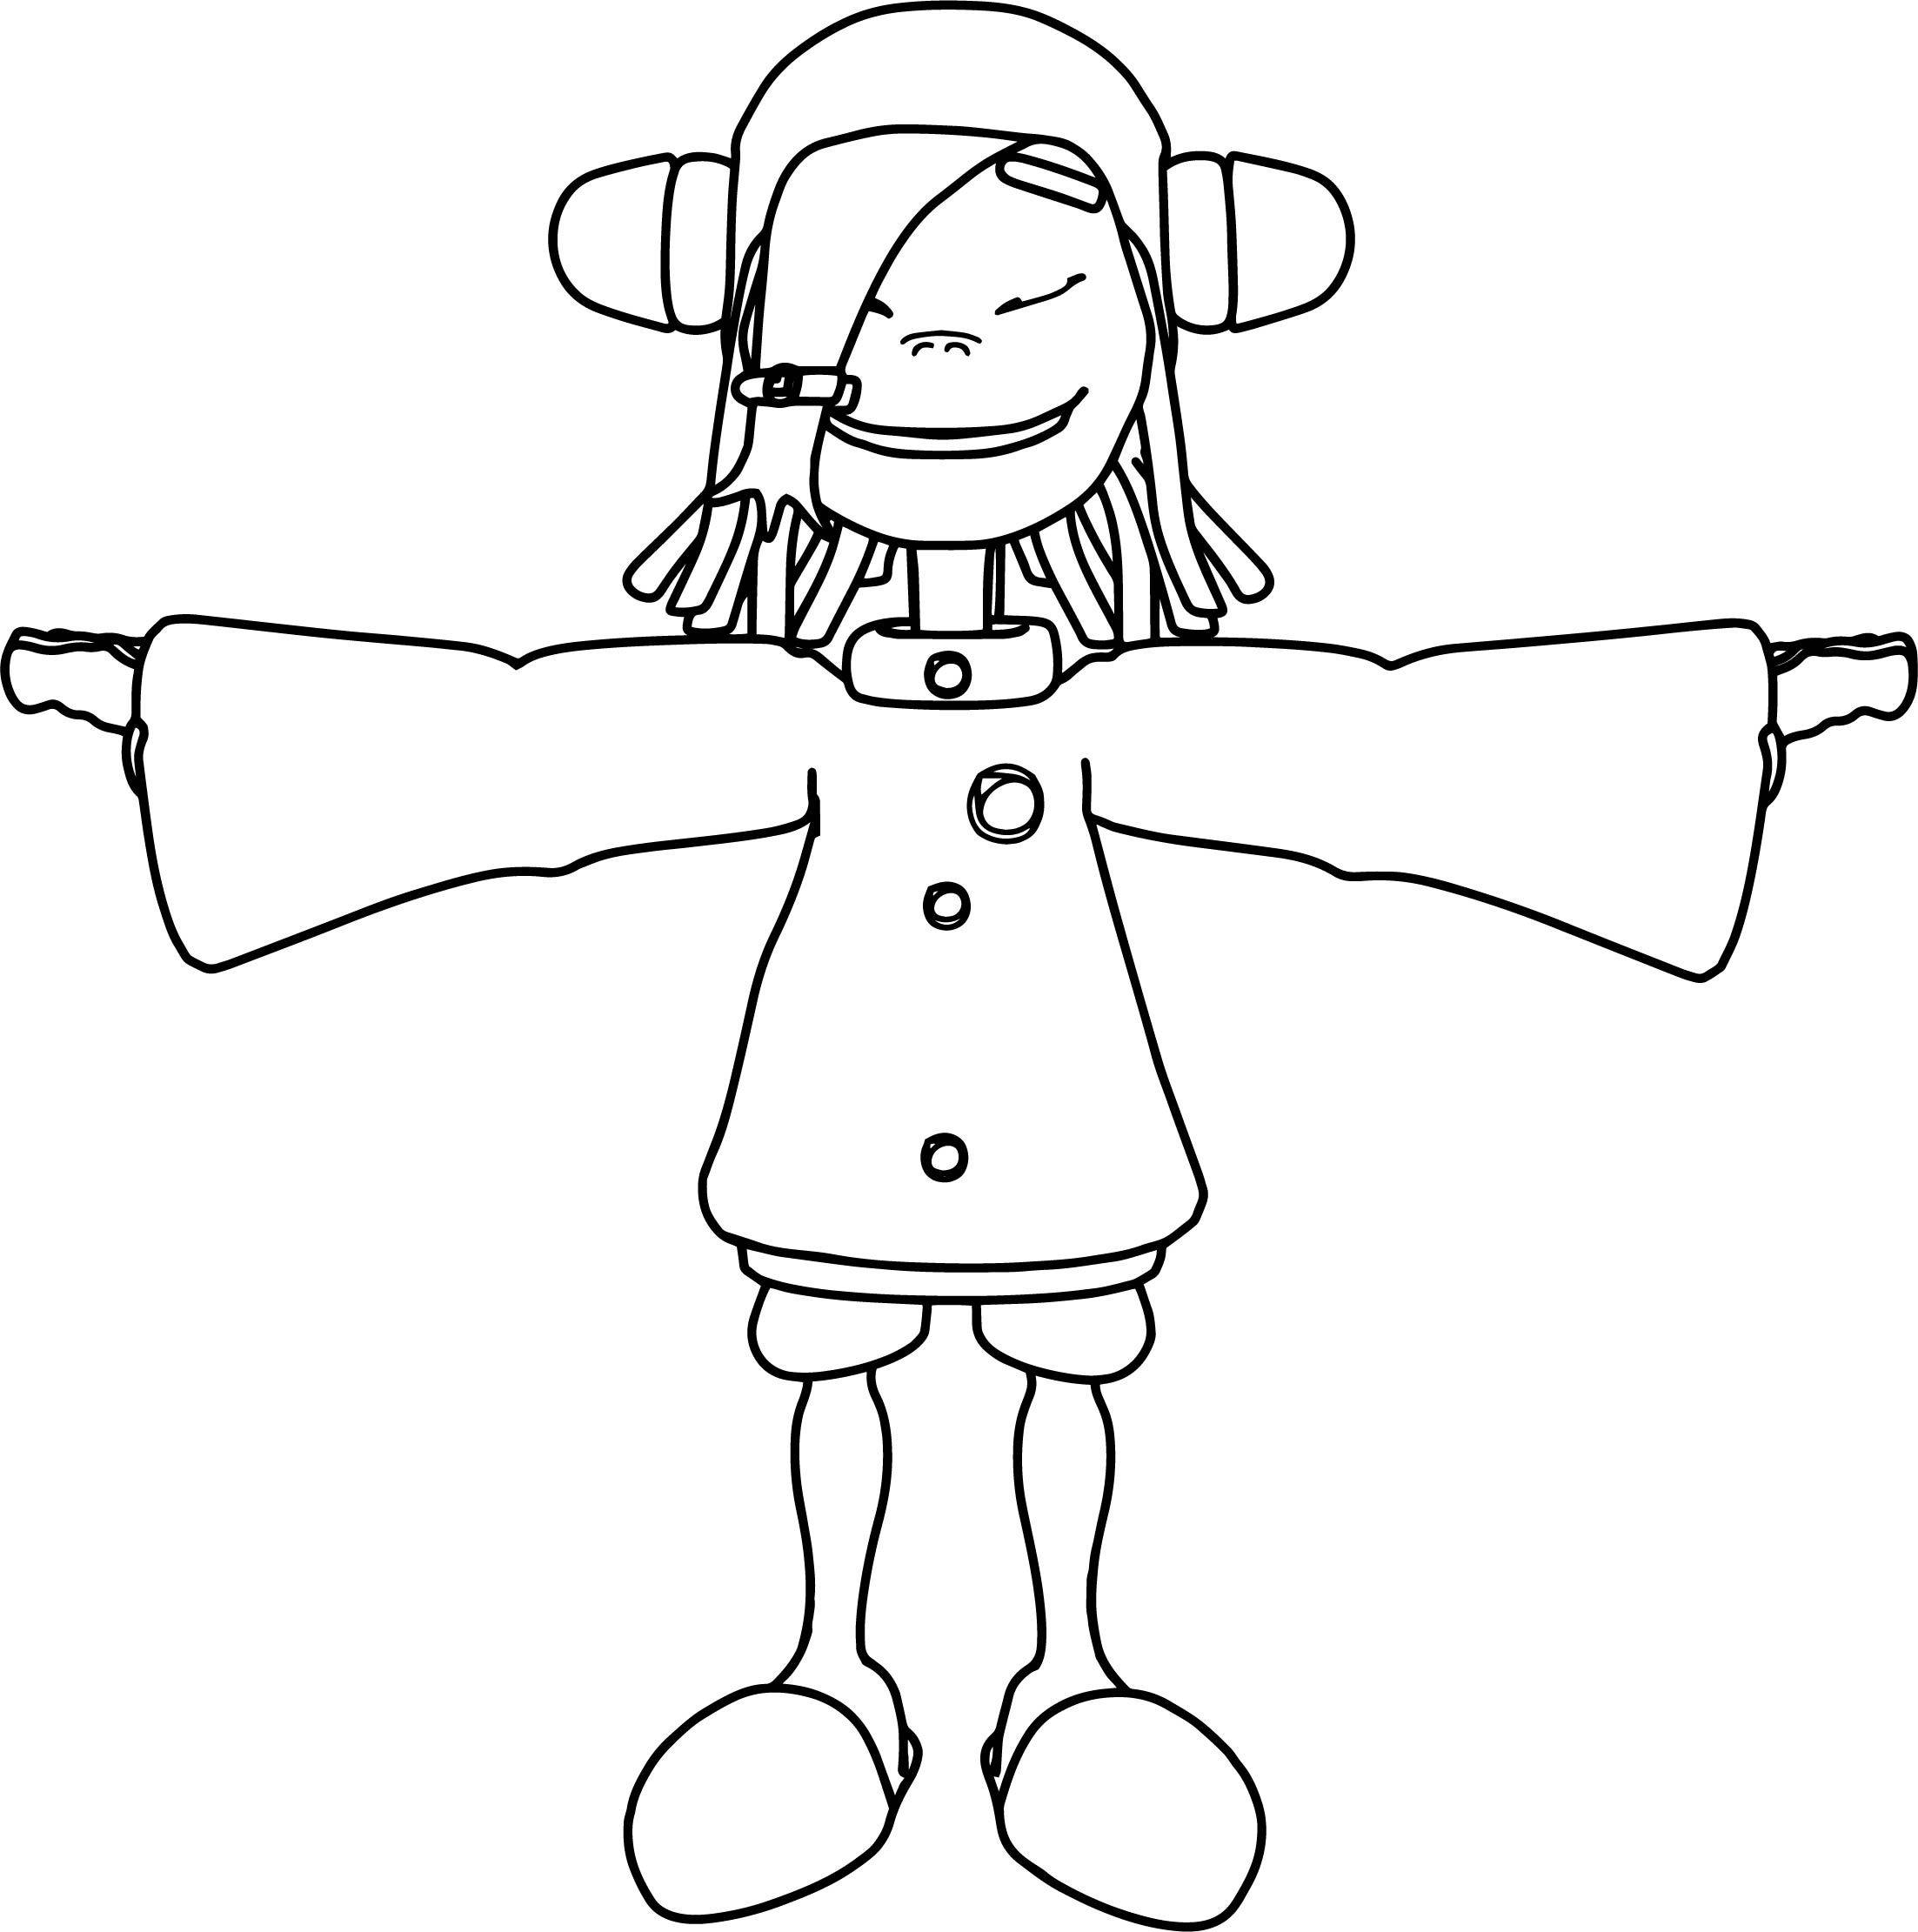 Noodle Girl Coloring Page